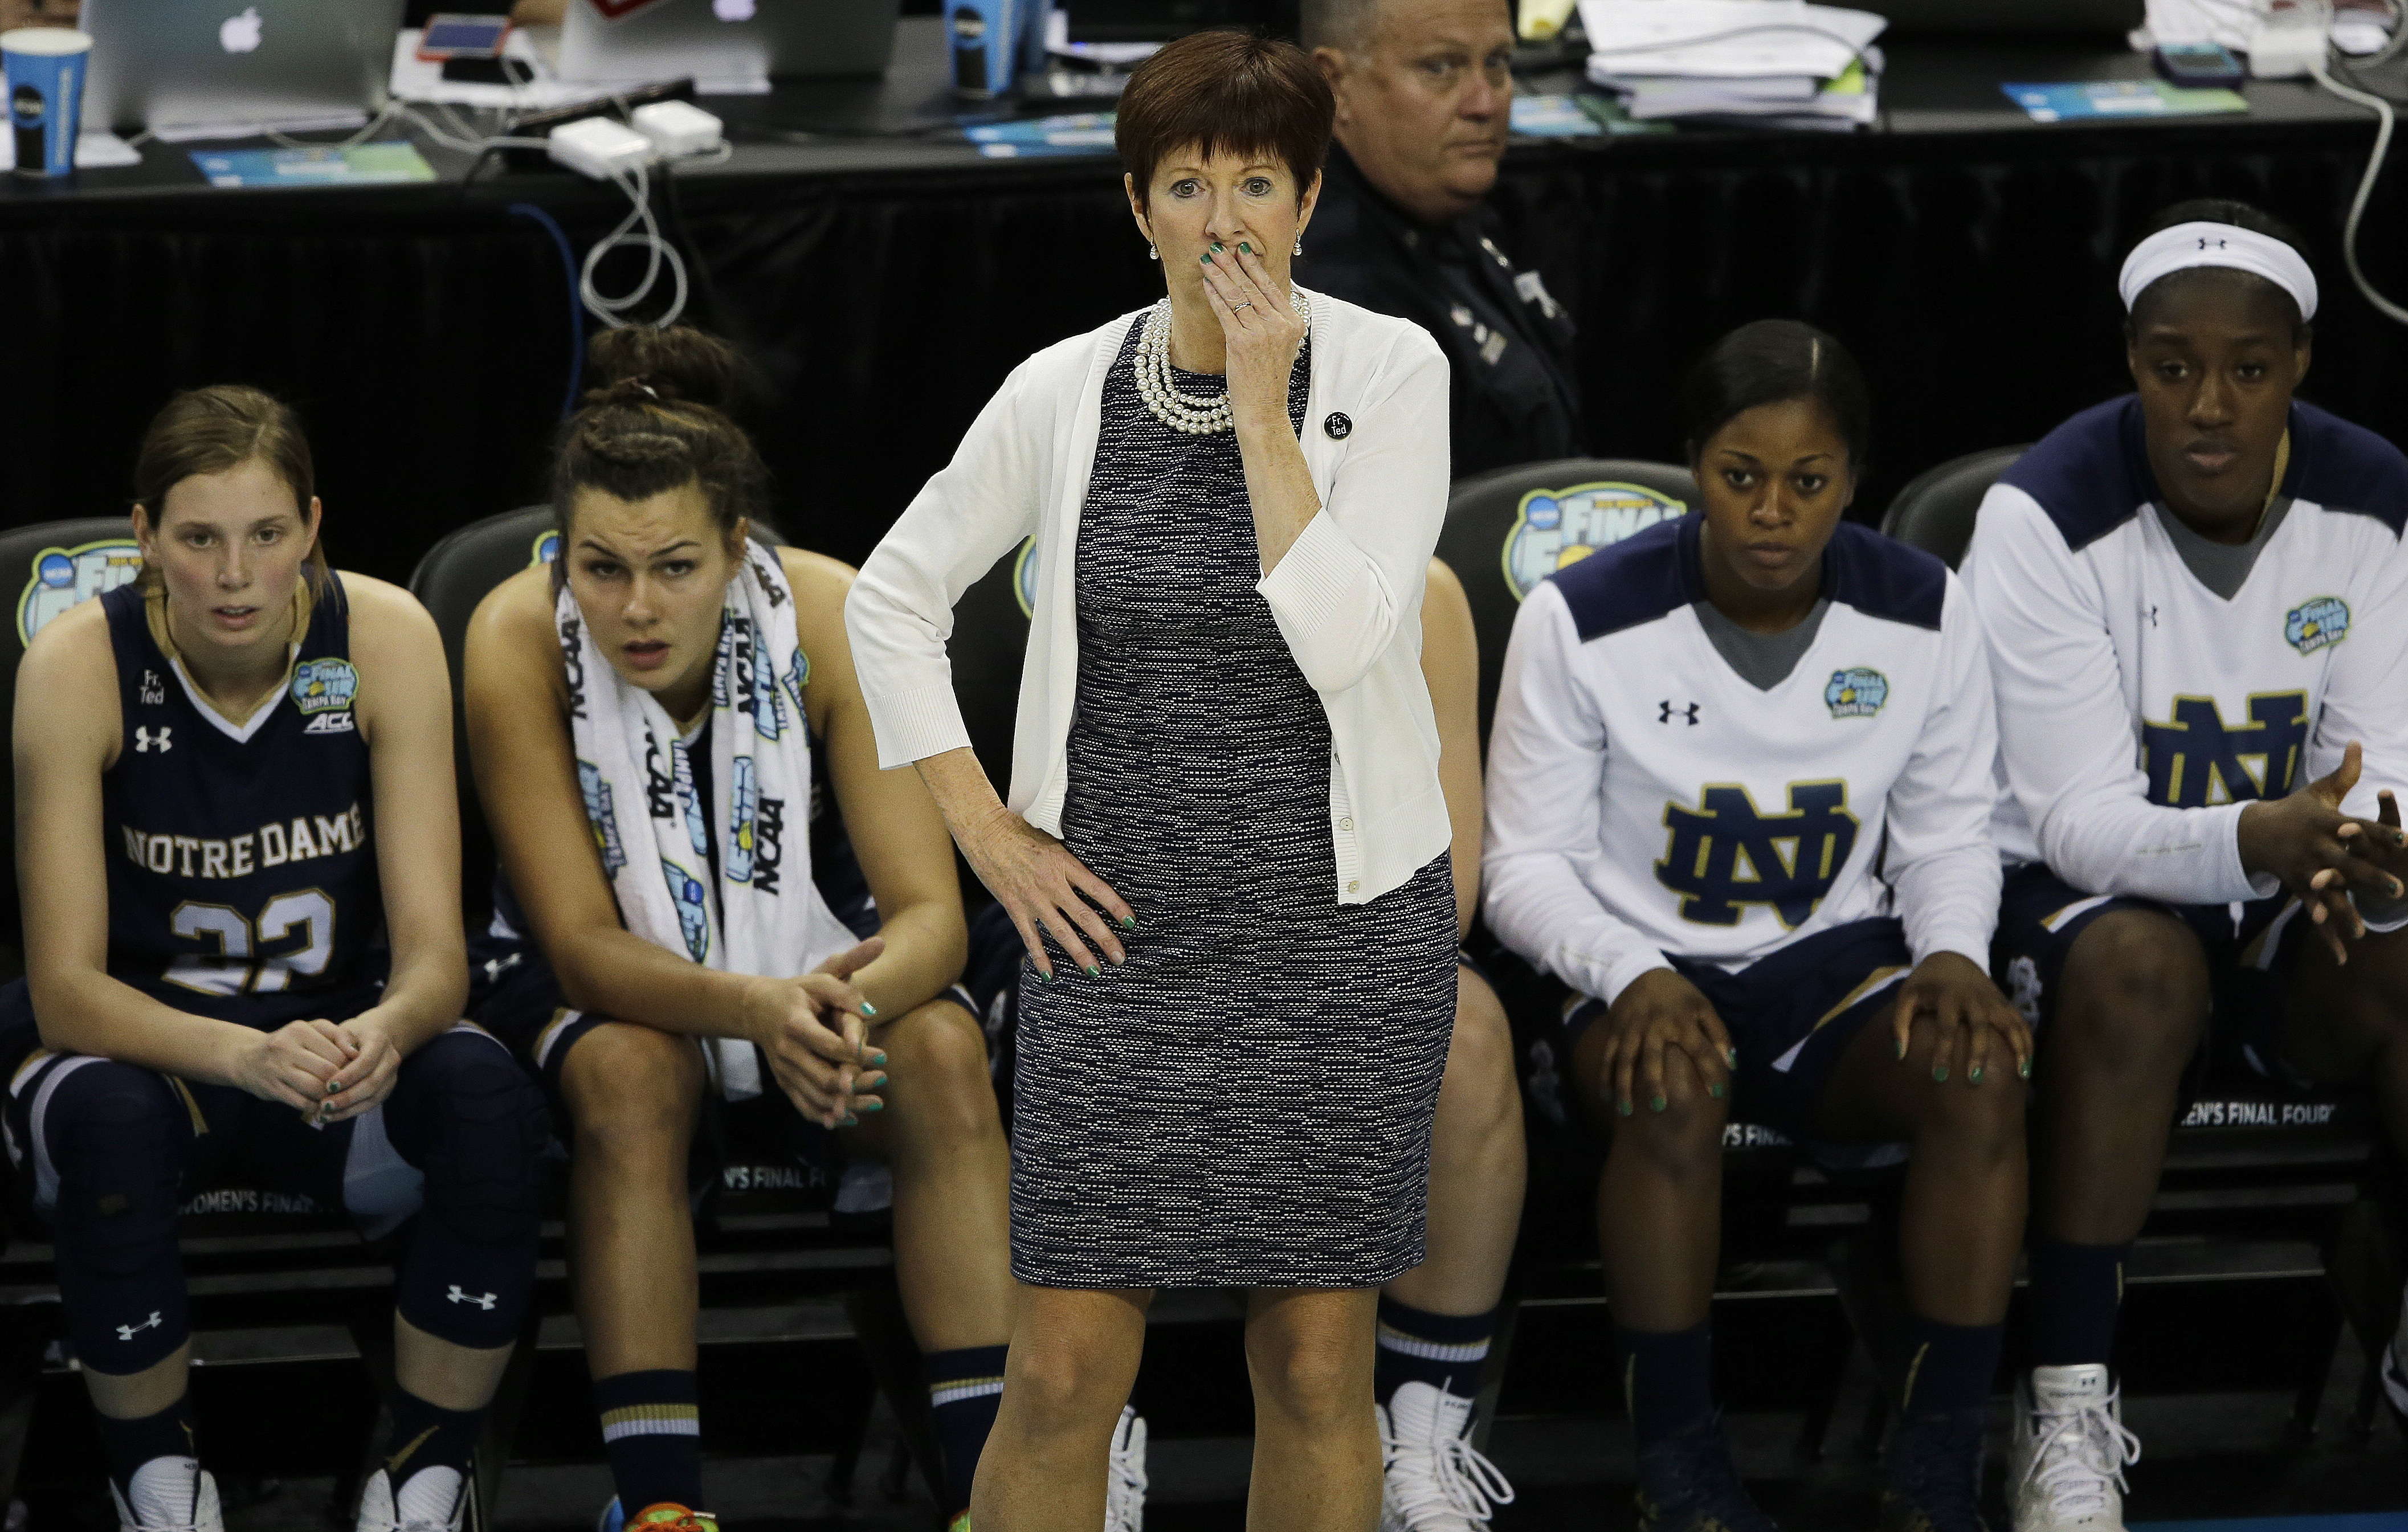 Notre Dame head coach Muffet McGraw watches play against Connecticut during the first half of the NCAA women's Final Four tournament college basketball championship game, Tuesday, April 7, 2015, in Tampa, Fla. (AP Photo/Chris O'Meara)